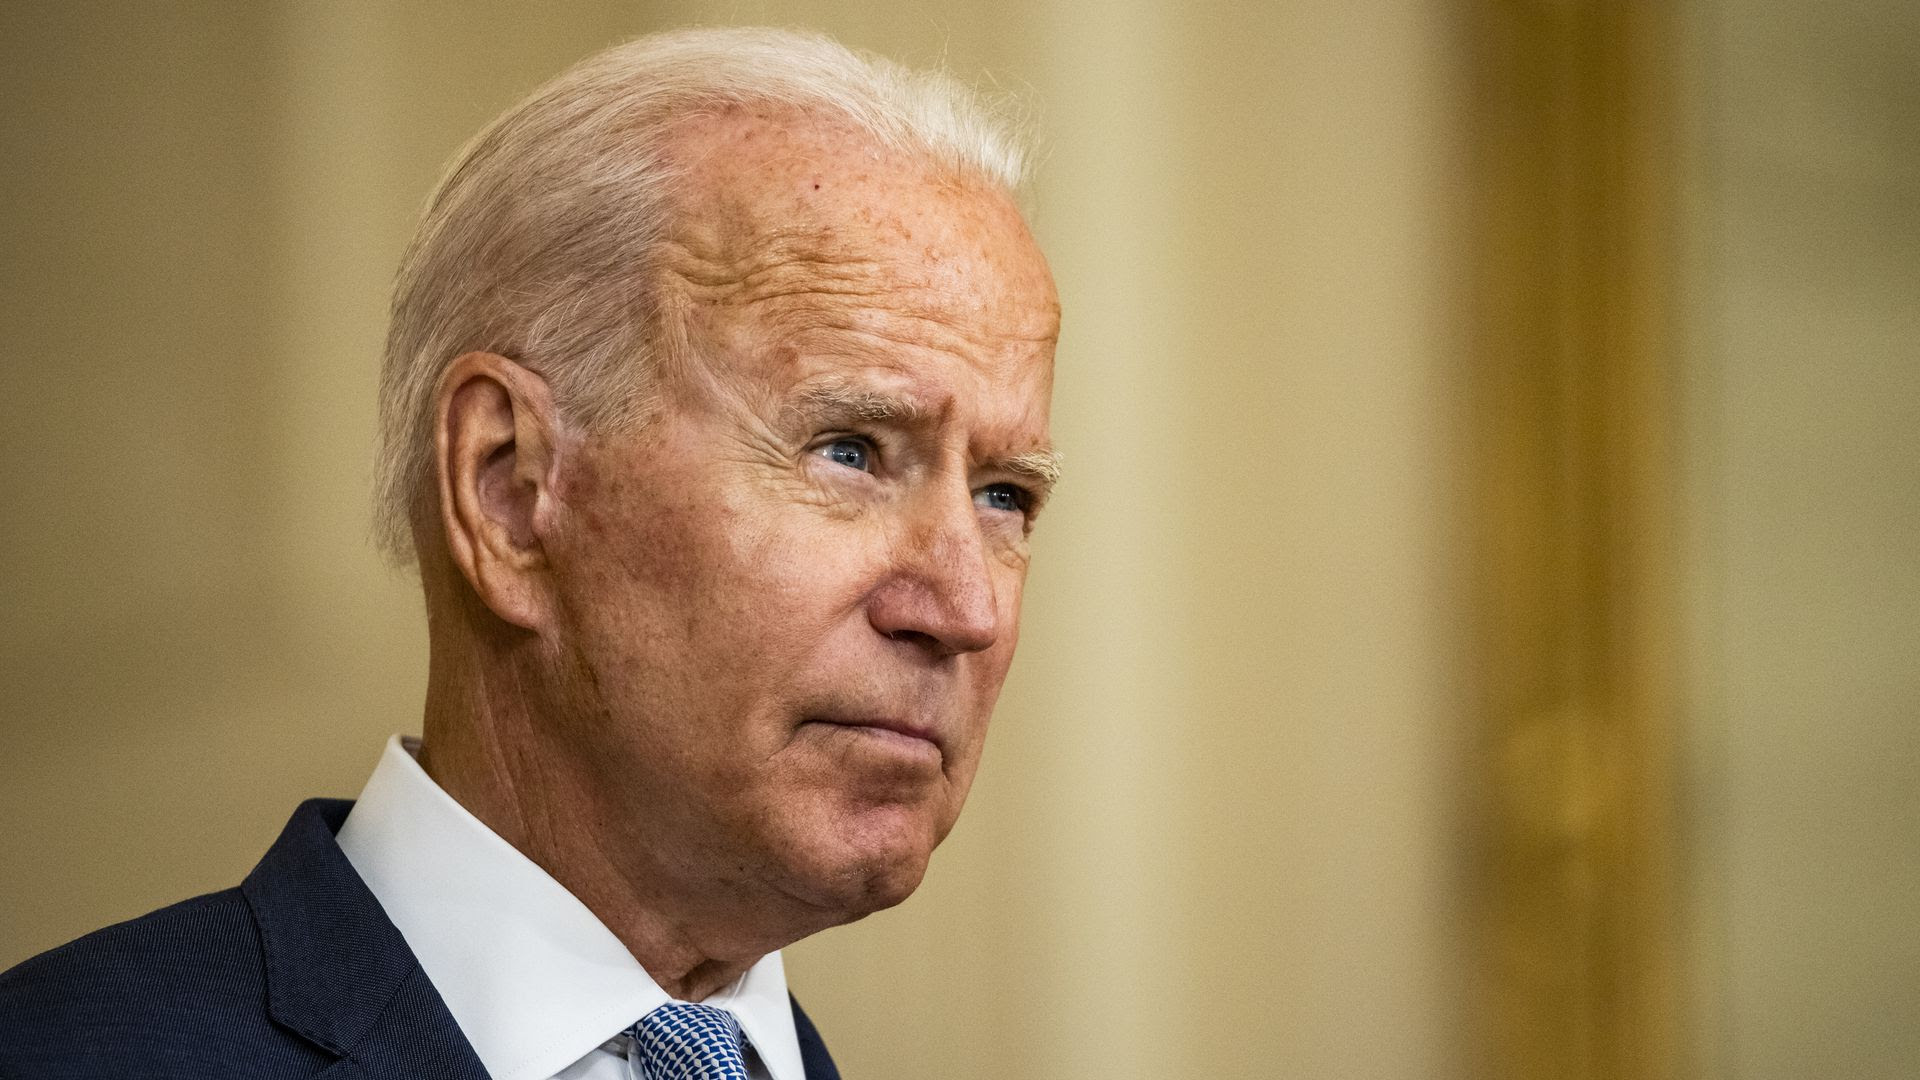 What to know about Biden's Monday address regarding Afghanistan